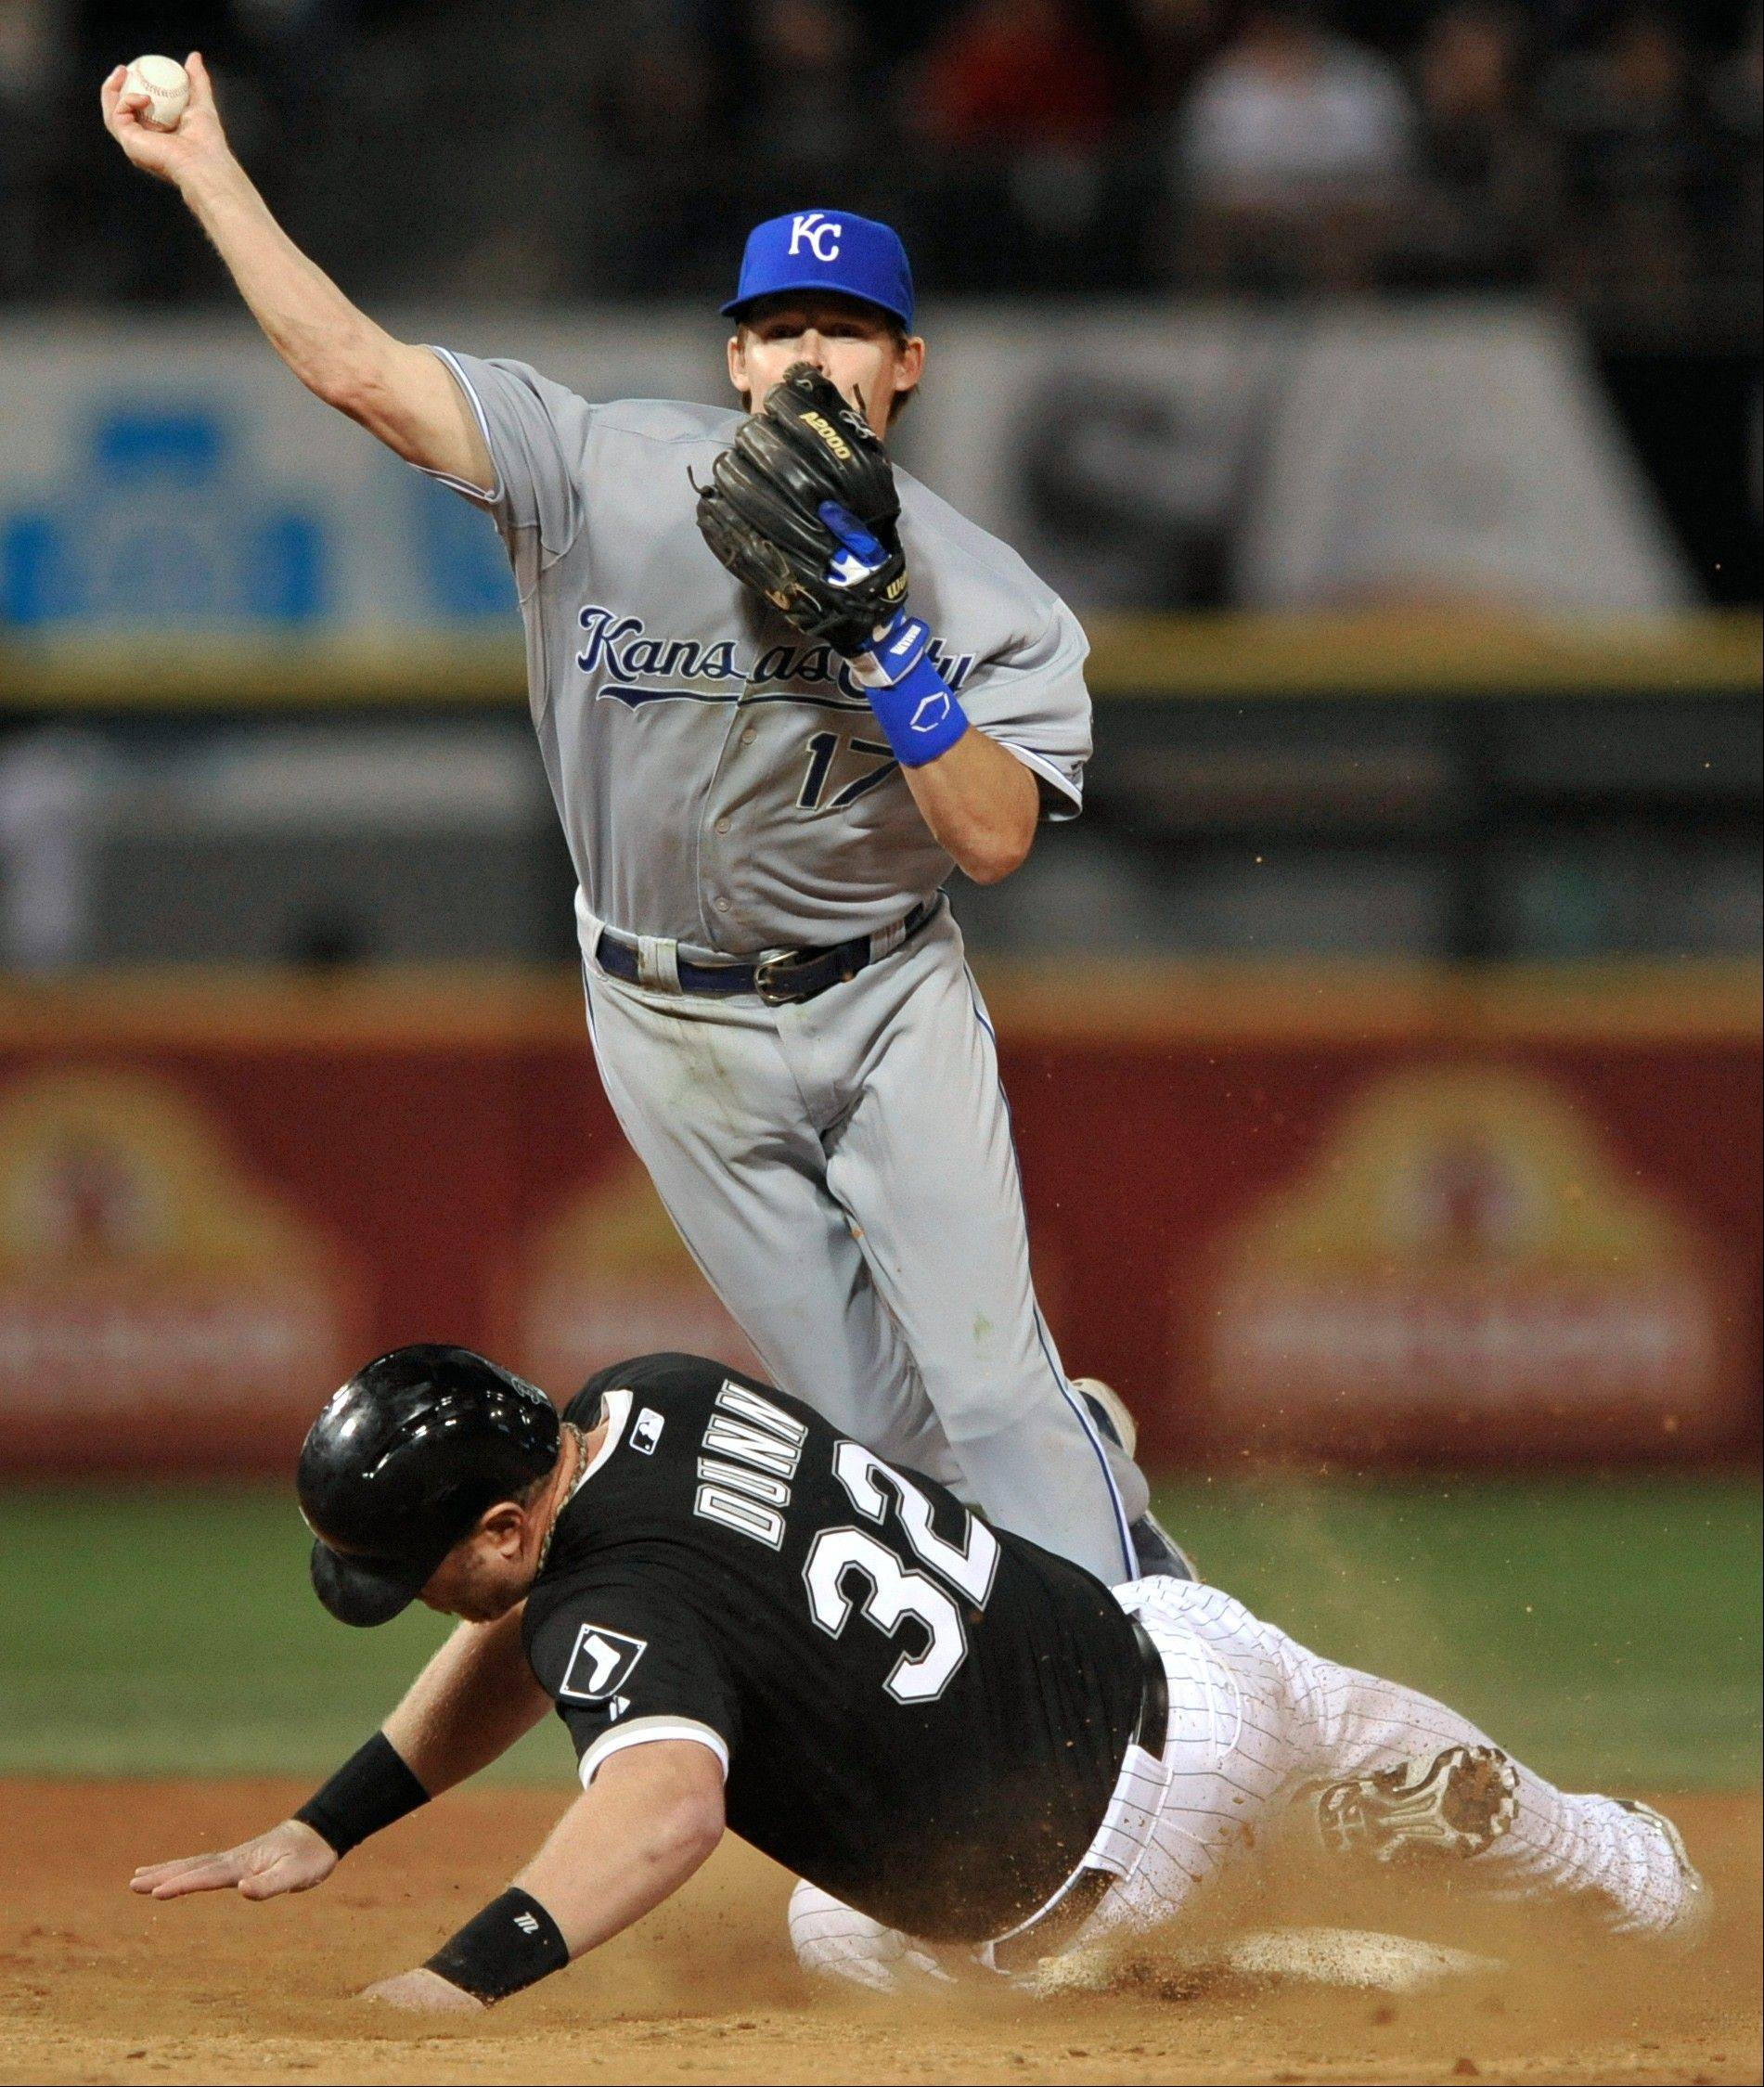 Kansas City Royals second baseman Chris Getz throws to first base after forcing out Chicago White Sox's Adam Dunn at second base during the ninth inning of a baseball game in Chicago, Saturday, July 27, 2013. Paul Konerko was safe at first. Kansas City won 1-0.